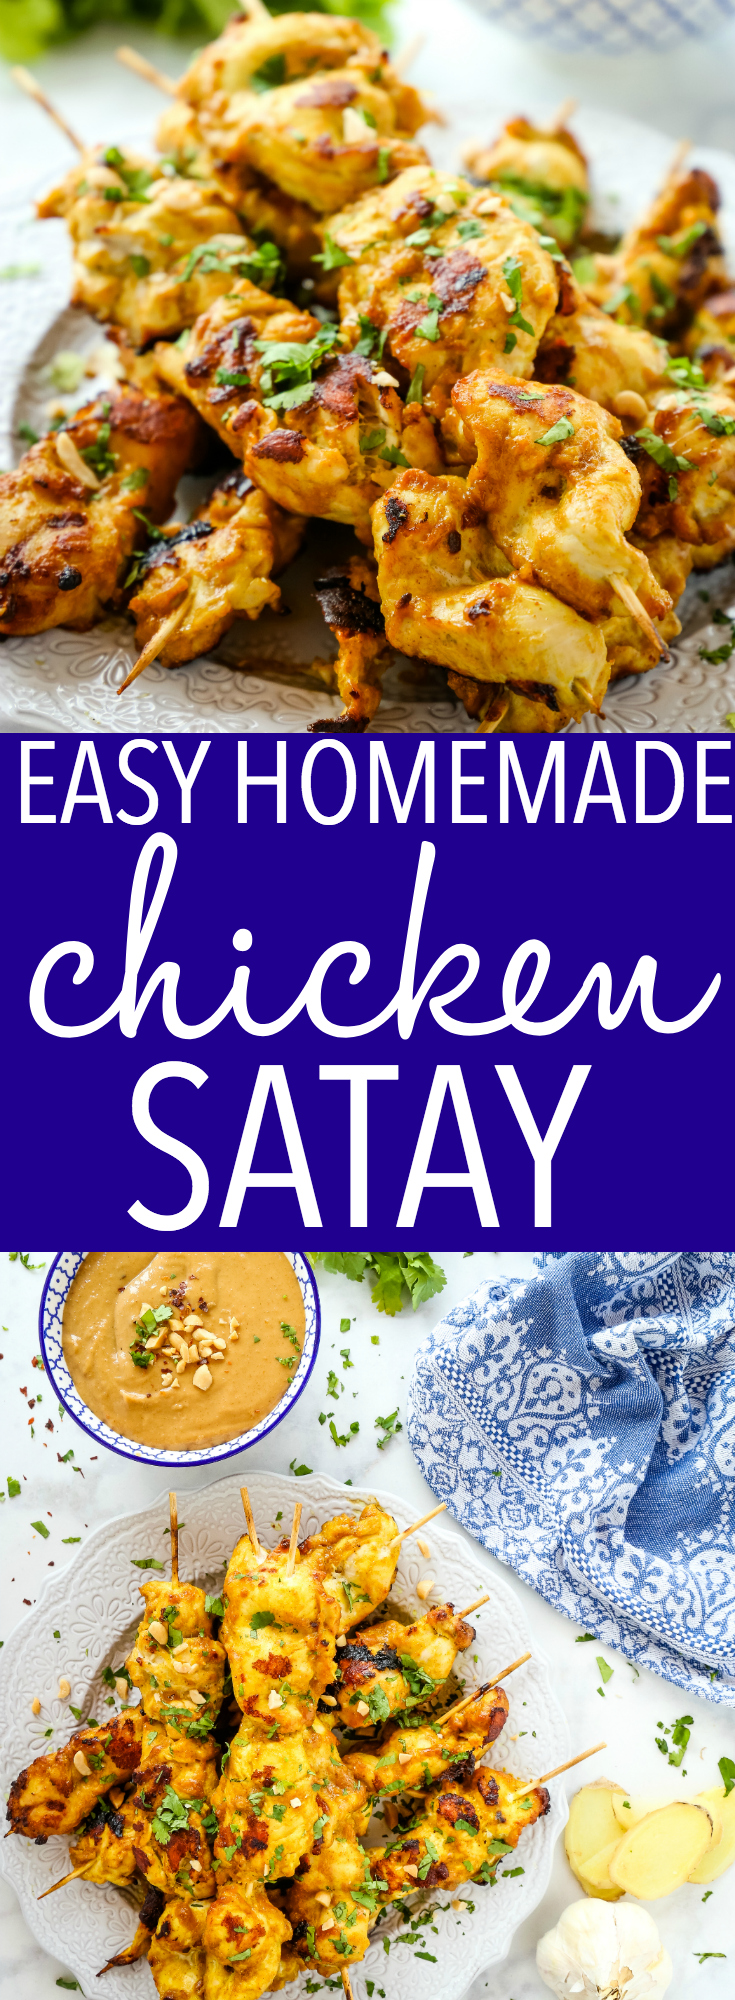 This Easy Homemade Chicken Satay with Peanut Dipping Sauce is a delicious way to enjoy Indonesian food at home! It's easy to make with a super simple marinade and creamy peanut sauce made from basic pantry ingredients! #chicken #satay #indonesian #food #thai #skewers #appetizer #dinner #maindish #grilling via @busybakerblog